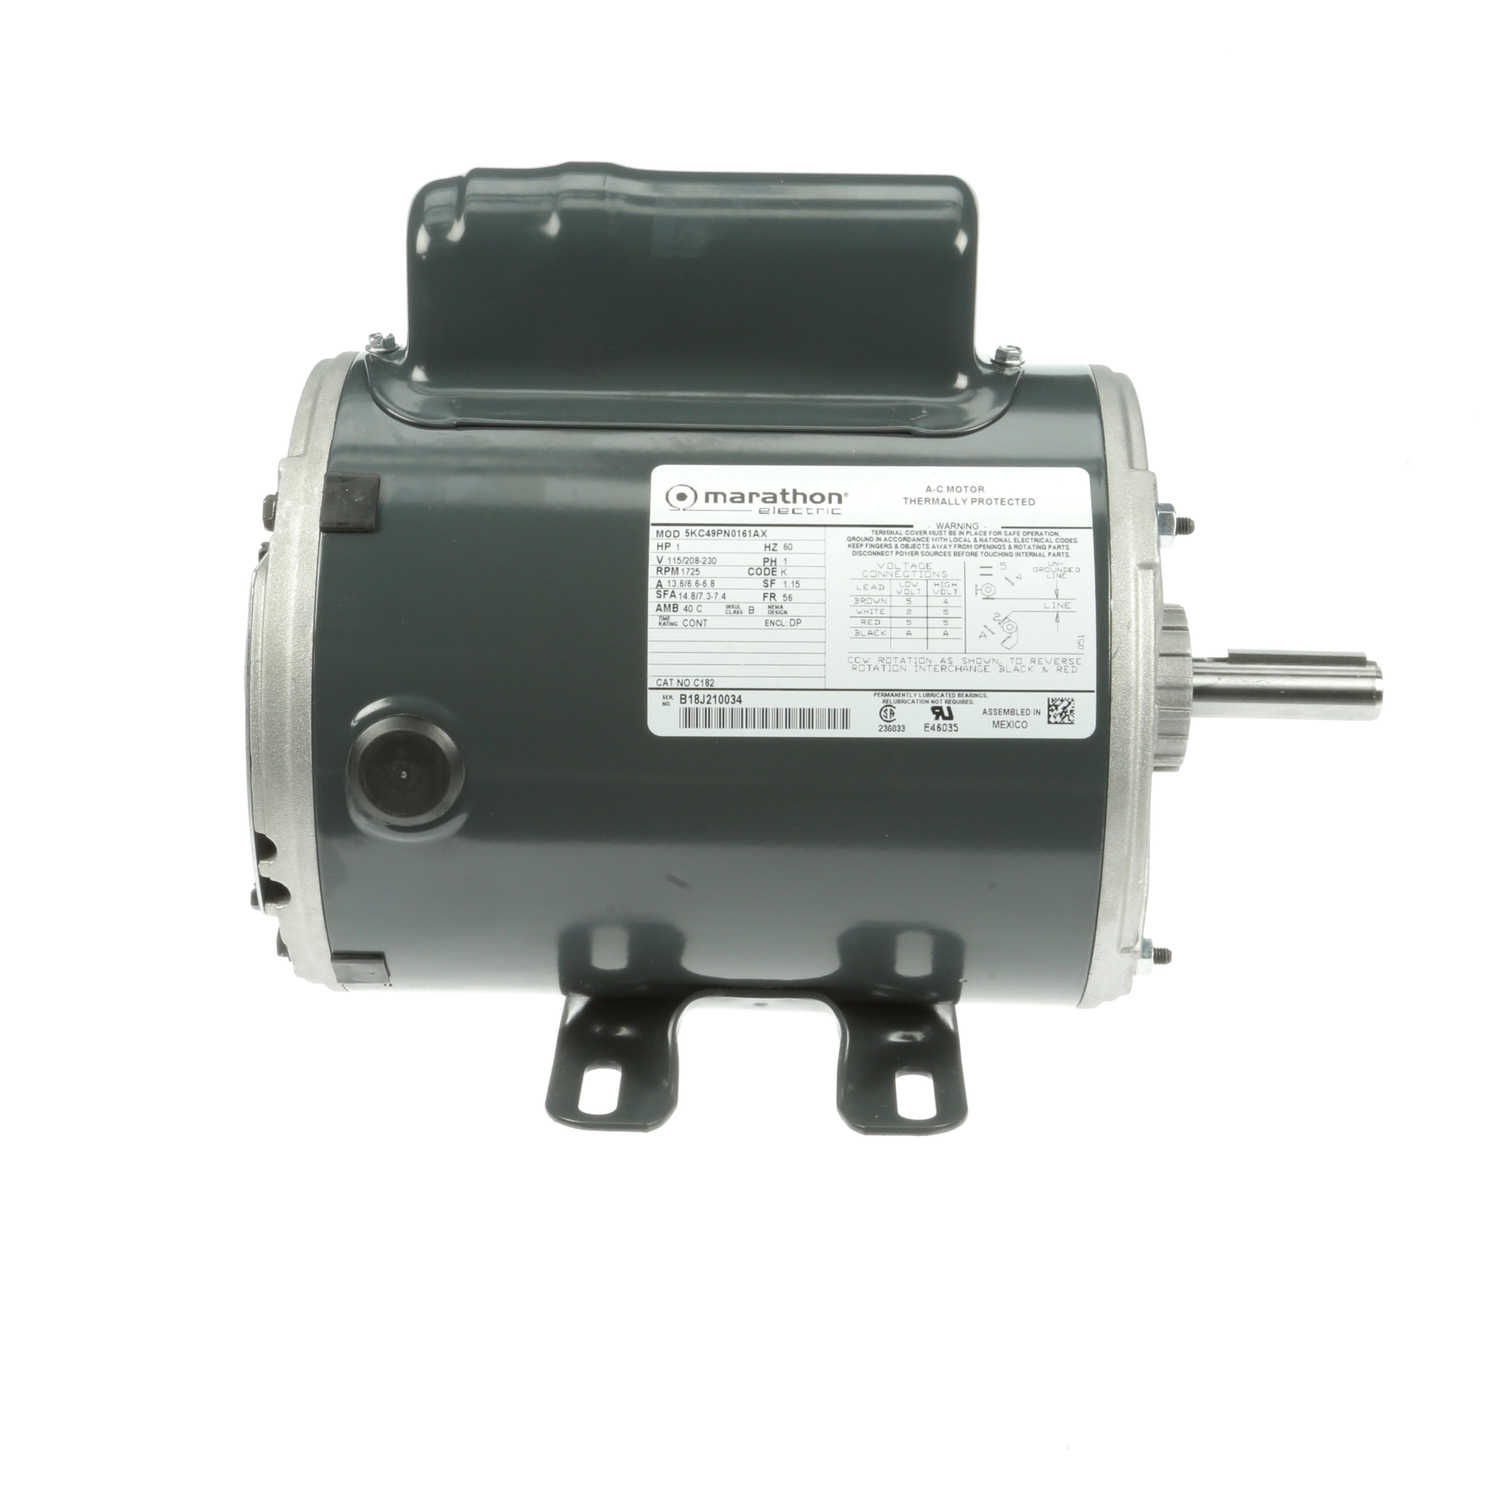 hight resolution of marathon motors 5kc49pn0161x c182 regal beloit marathon electric ac motor thermally protected 15 hp field wiring